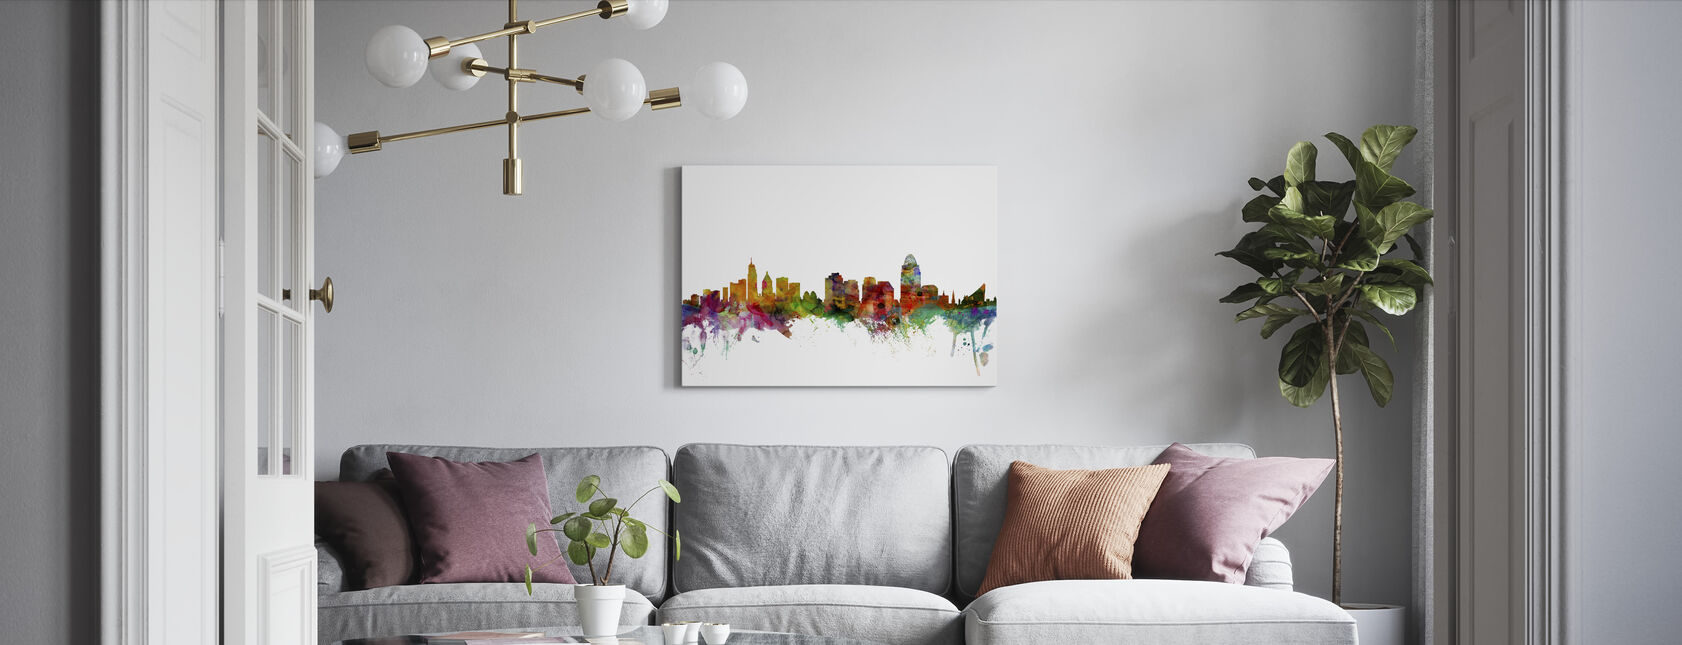 Cincinnati Ohio Skyline - Canvas print - Living Room